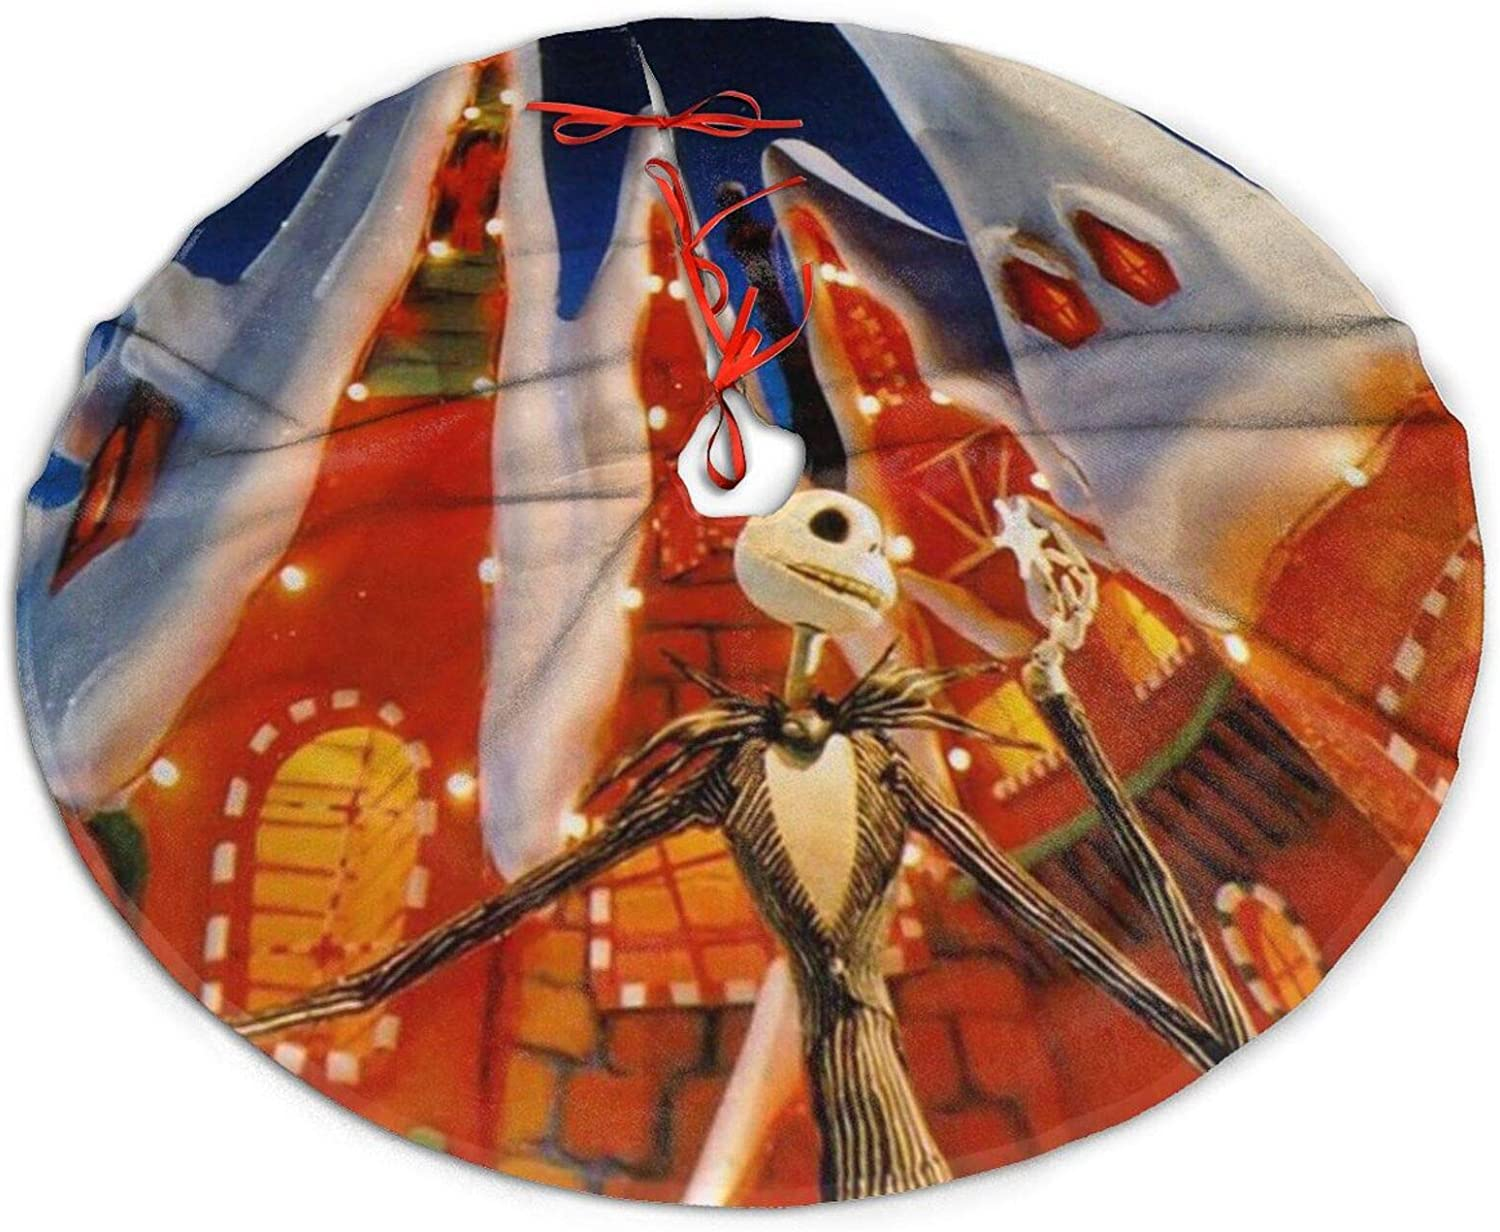 Sadie Mae The Nightmare Before Christmas Christmas Tree Skirt Kits Mat for Christmas Decorations for Xmas Gifts New Year Party and Holiday Soft and Light Easy to Put in Home Office Livingroom 48in